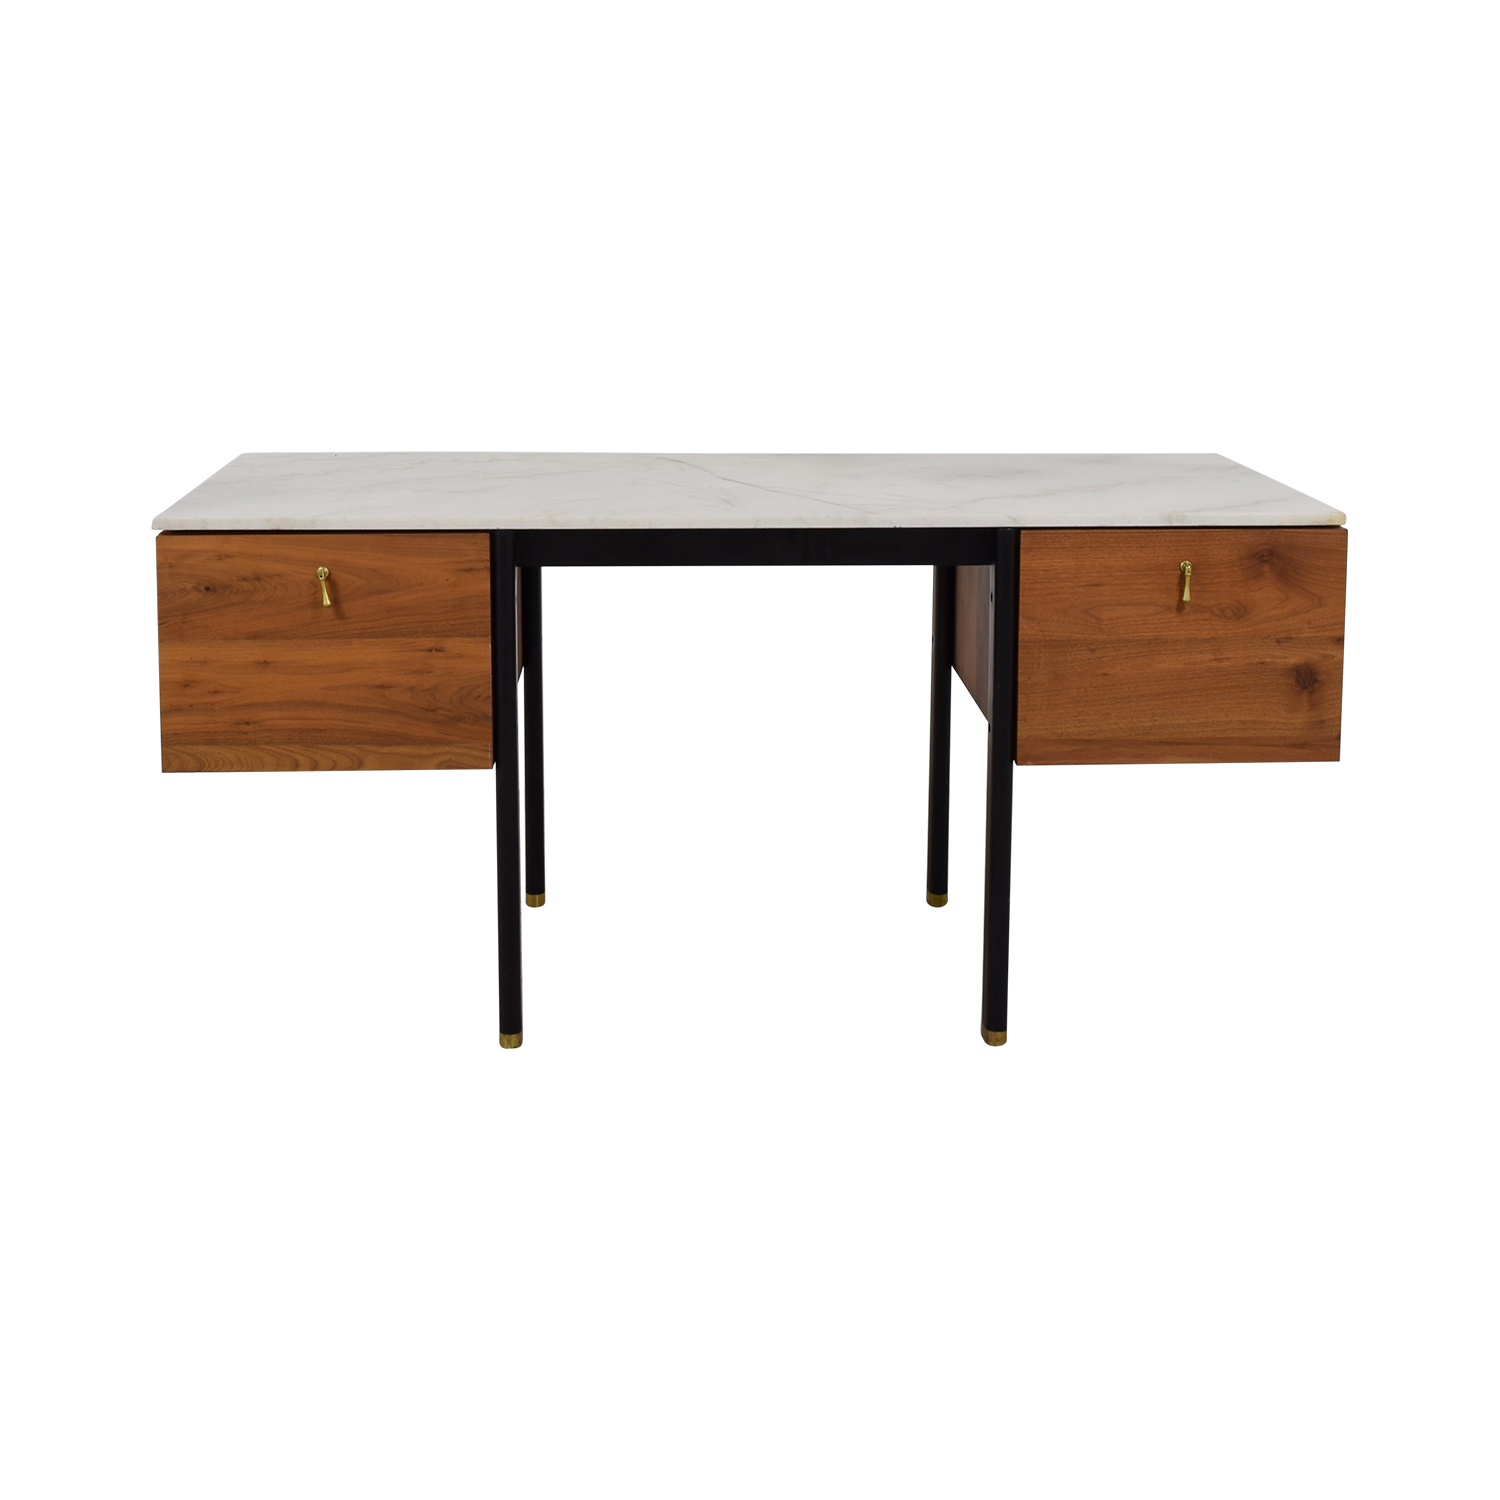 Organic Modernism Walnut Burro Two-Drawer Desk / Tables